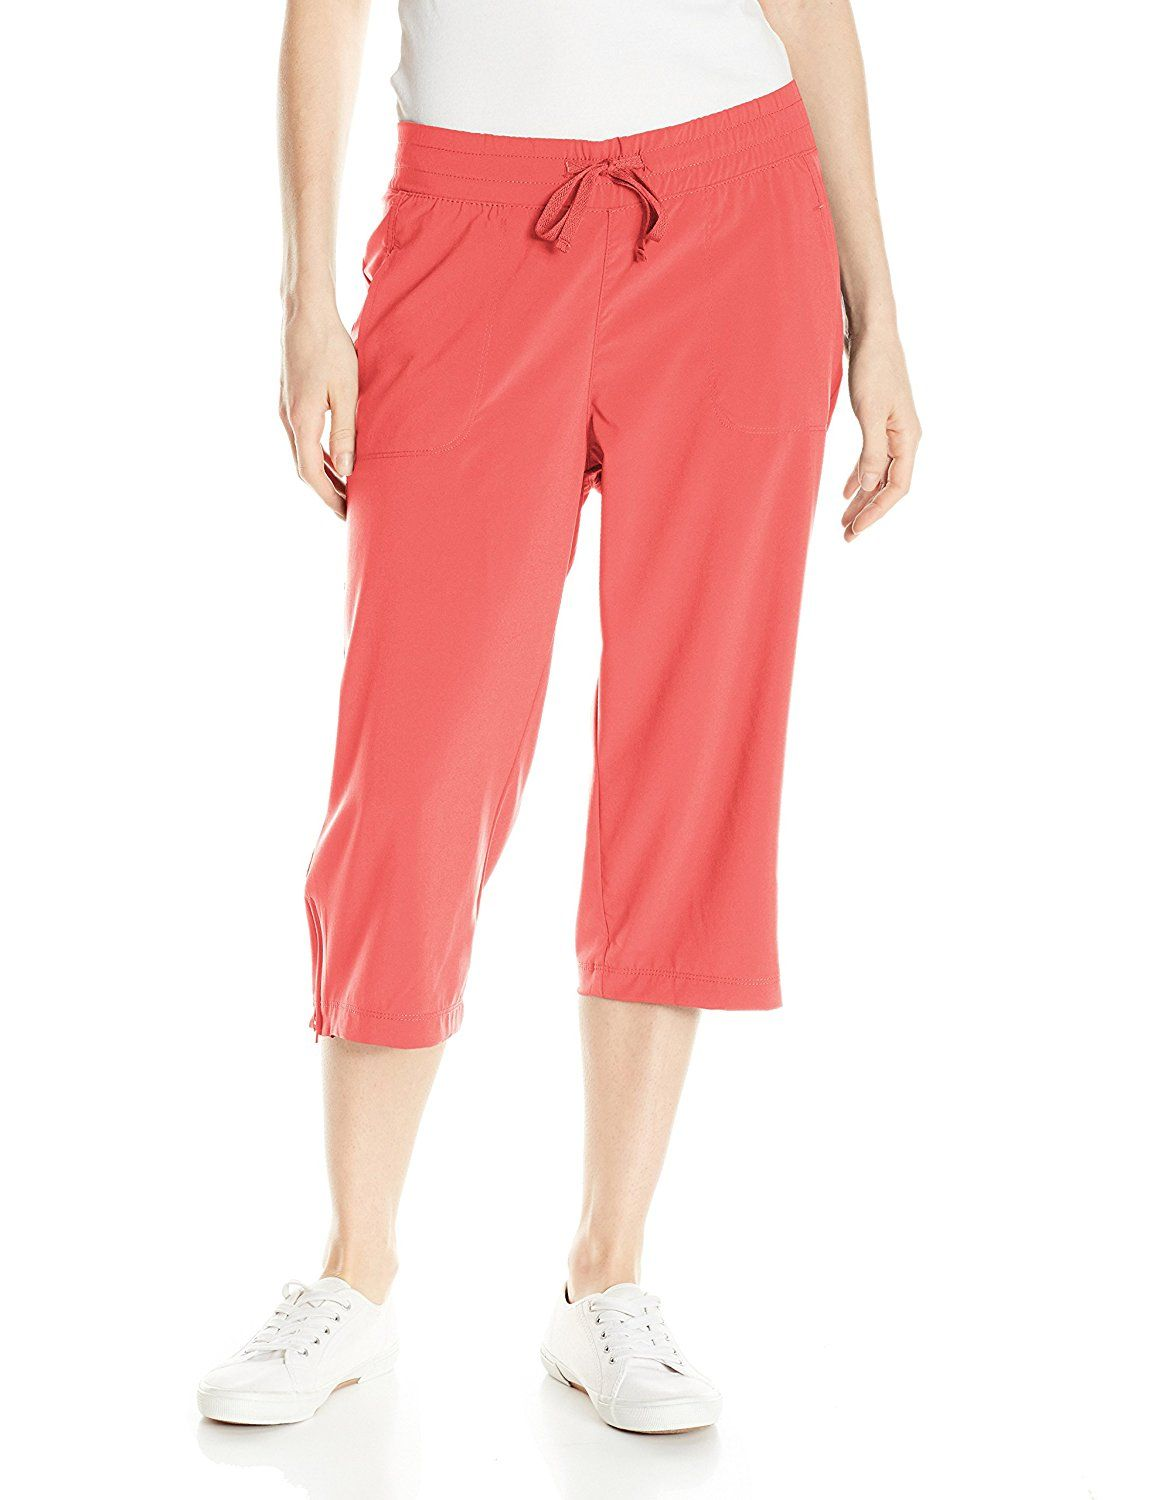 2019 year lifestyle- How to capri red wear pants